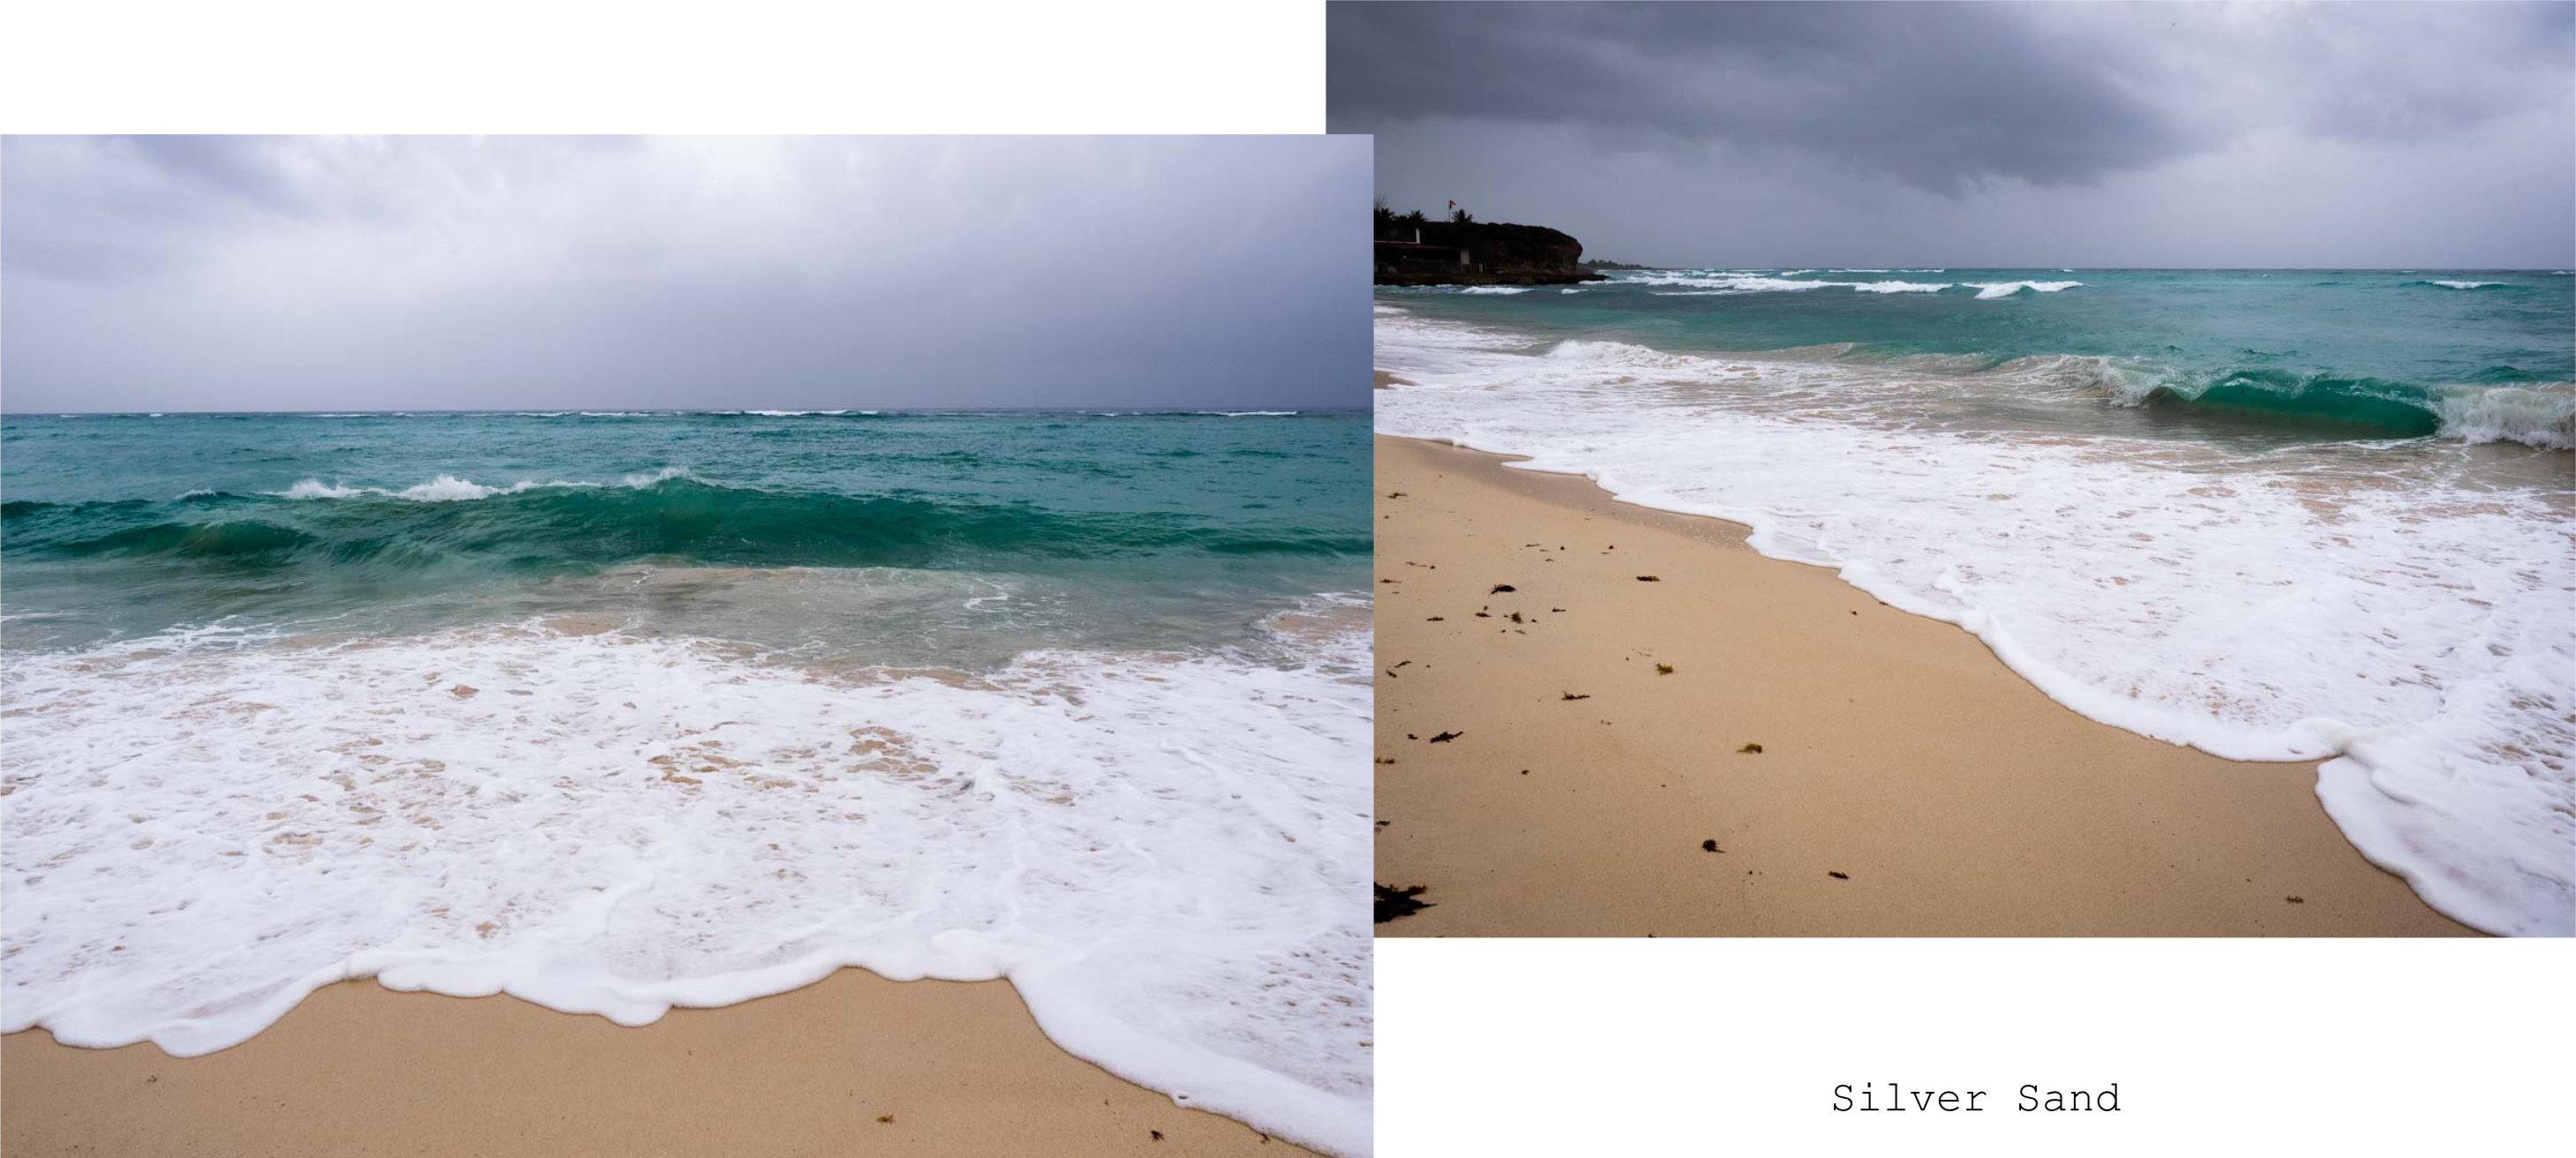 visiter la Barbade-plages paradisiaques- silver sand